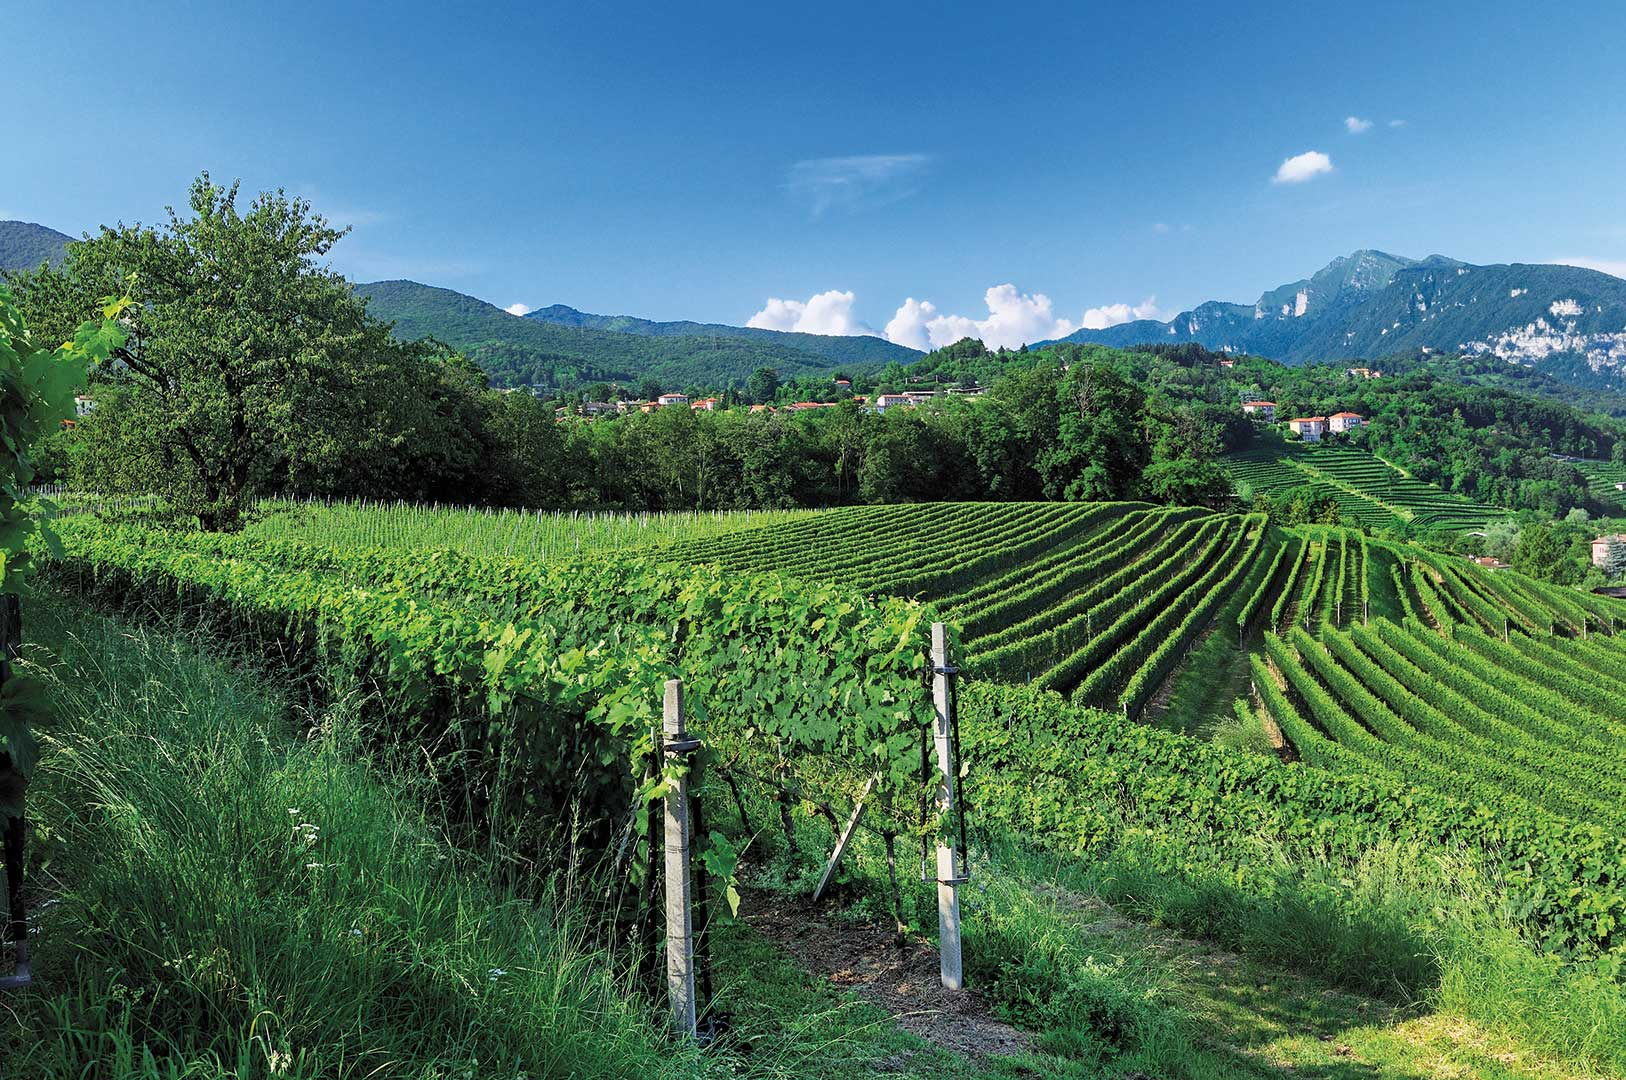 Vineyards in the Mendrisiotto region of Ticino.